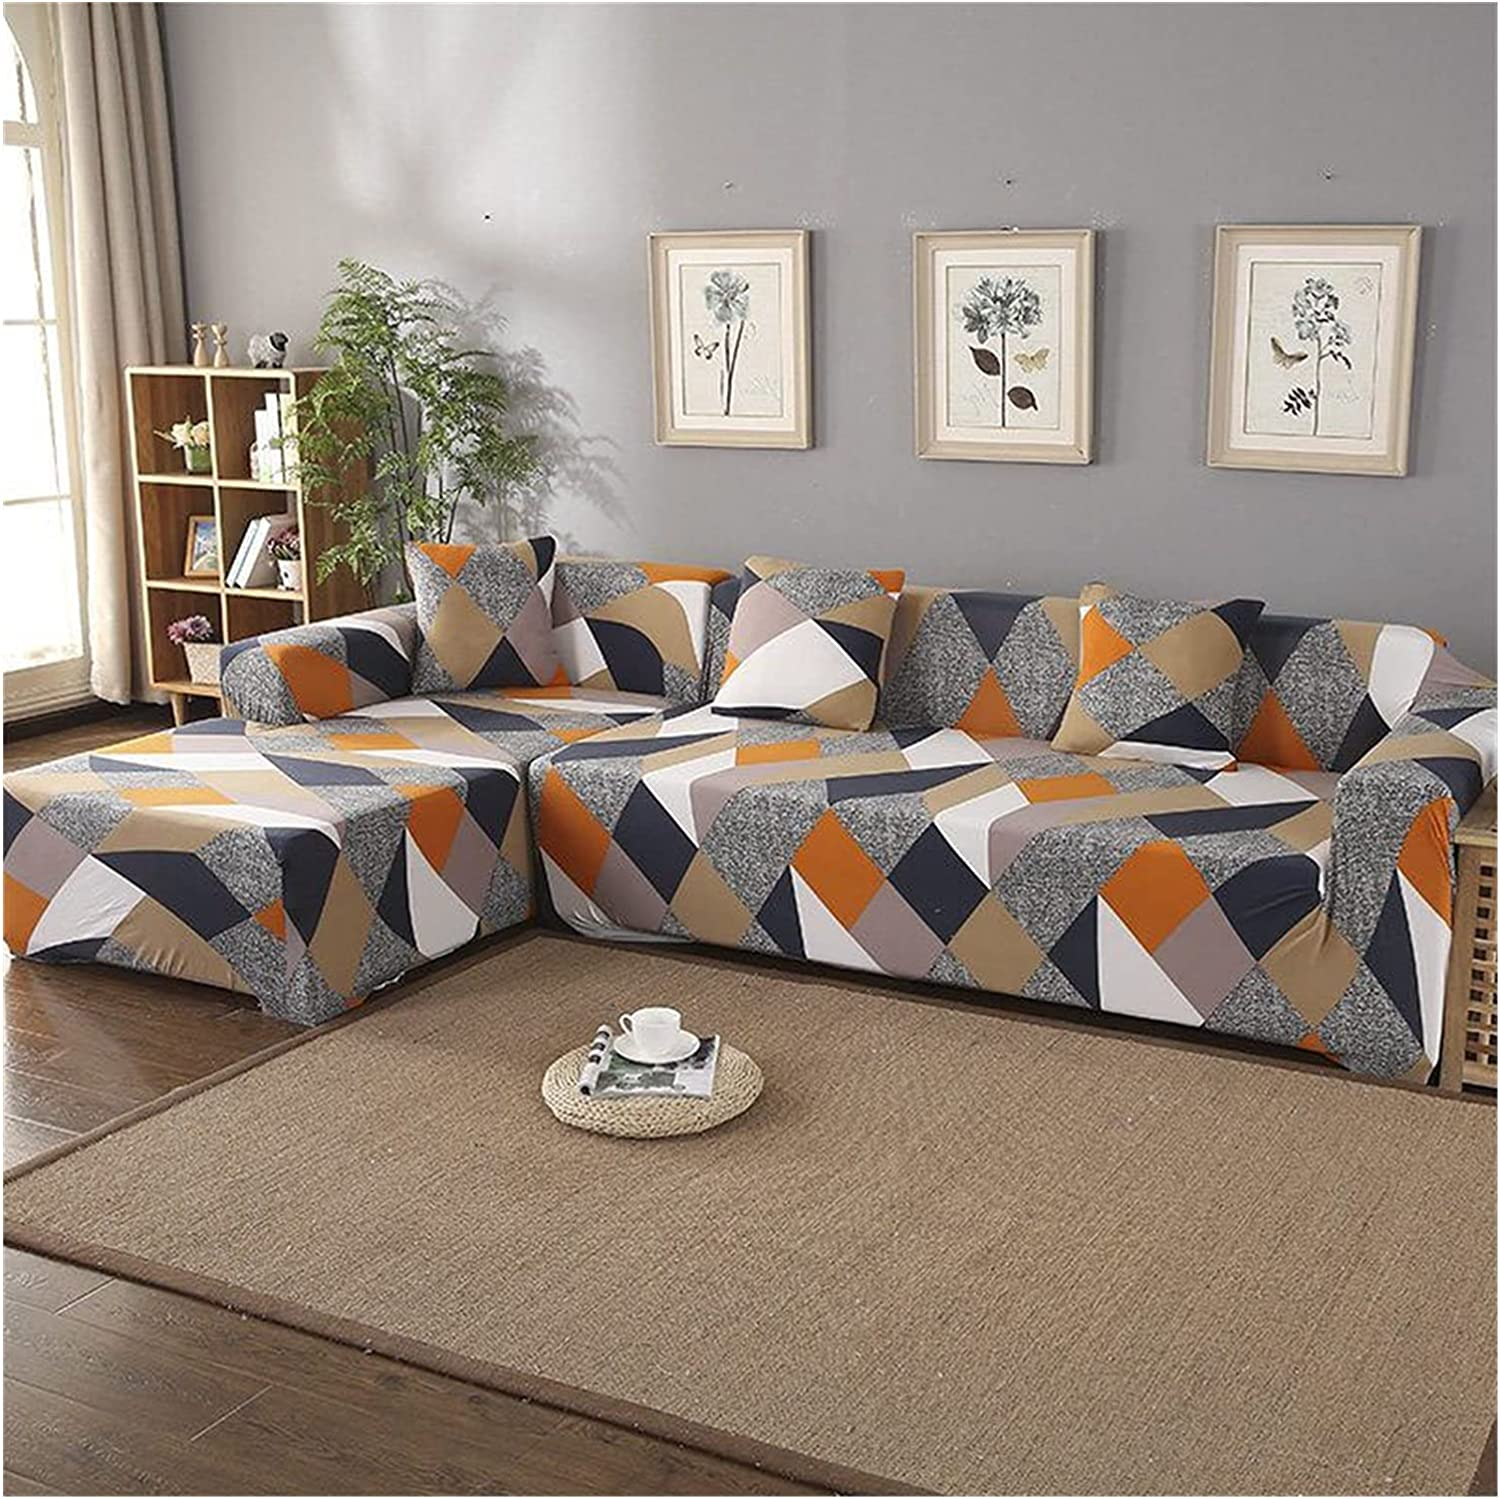 ZHBO Sofa Brand new Covers for Living Oakland Mall Room Pieces Sect Geometric 2 1 Plaid